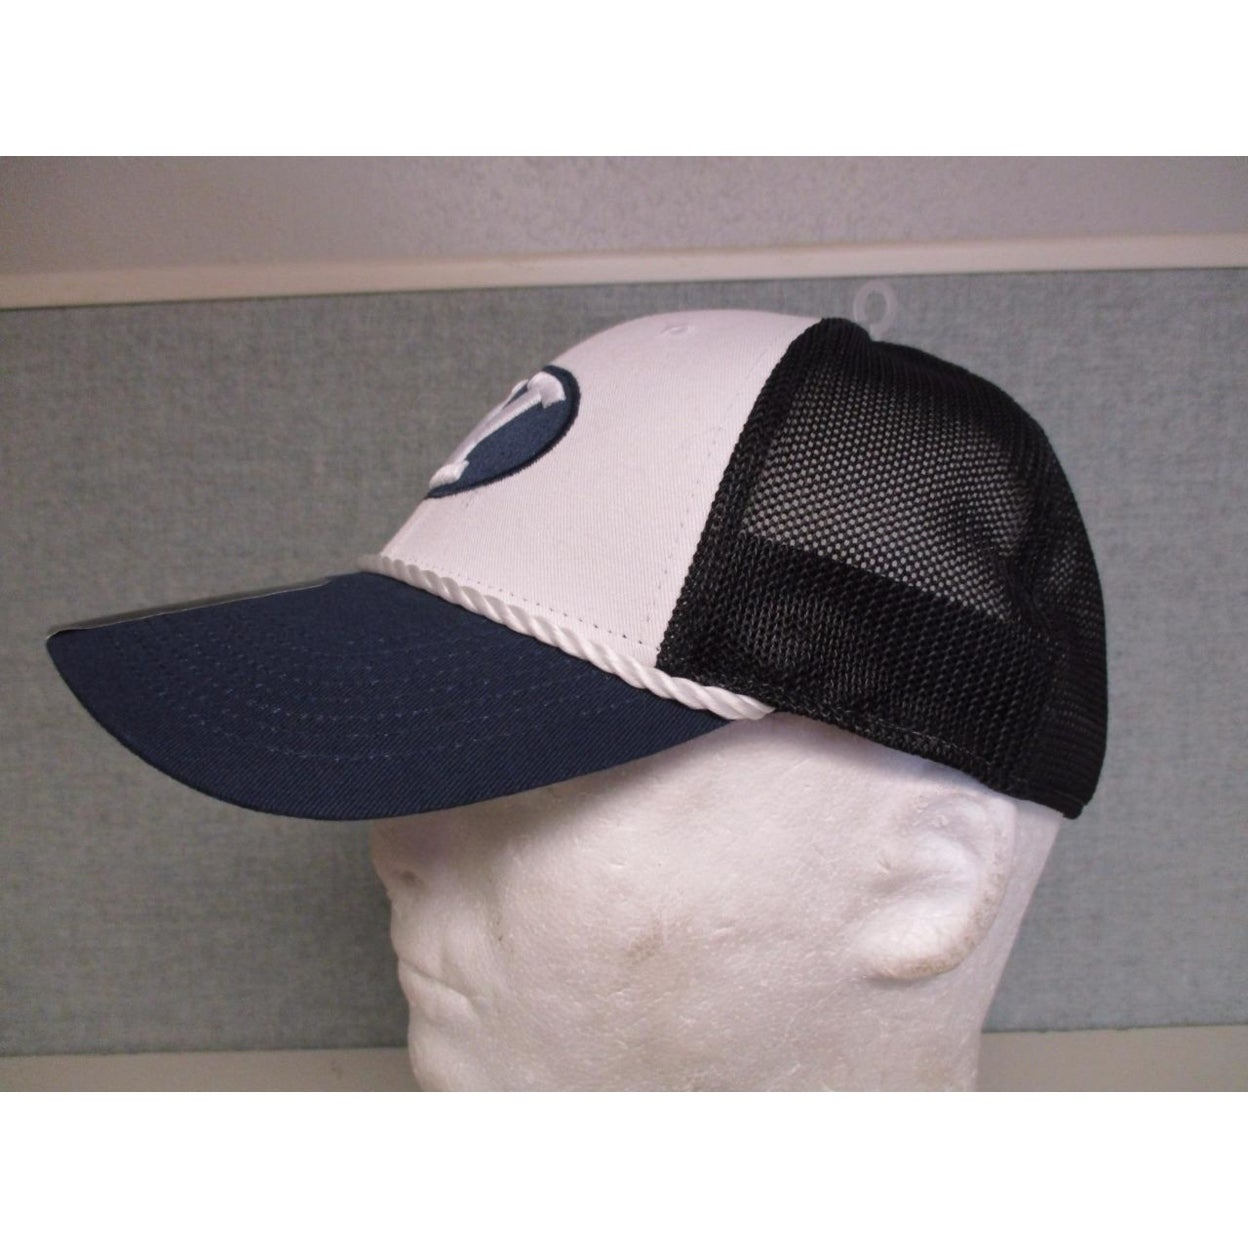 quality design 3c4e5 6052f Shop Byu Cougars Adult Mens Sizes Osfa Nike Trucker Flex Fit Cap Hat - On  Sale - Free Shipping On Orders Over  45 - Overstock - 23075439